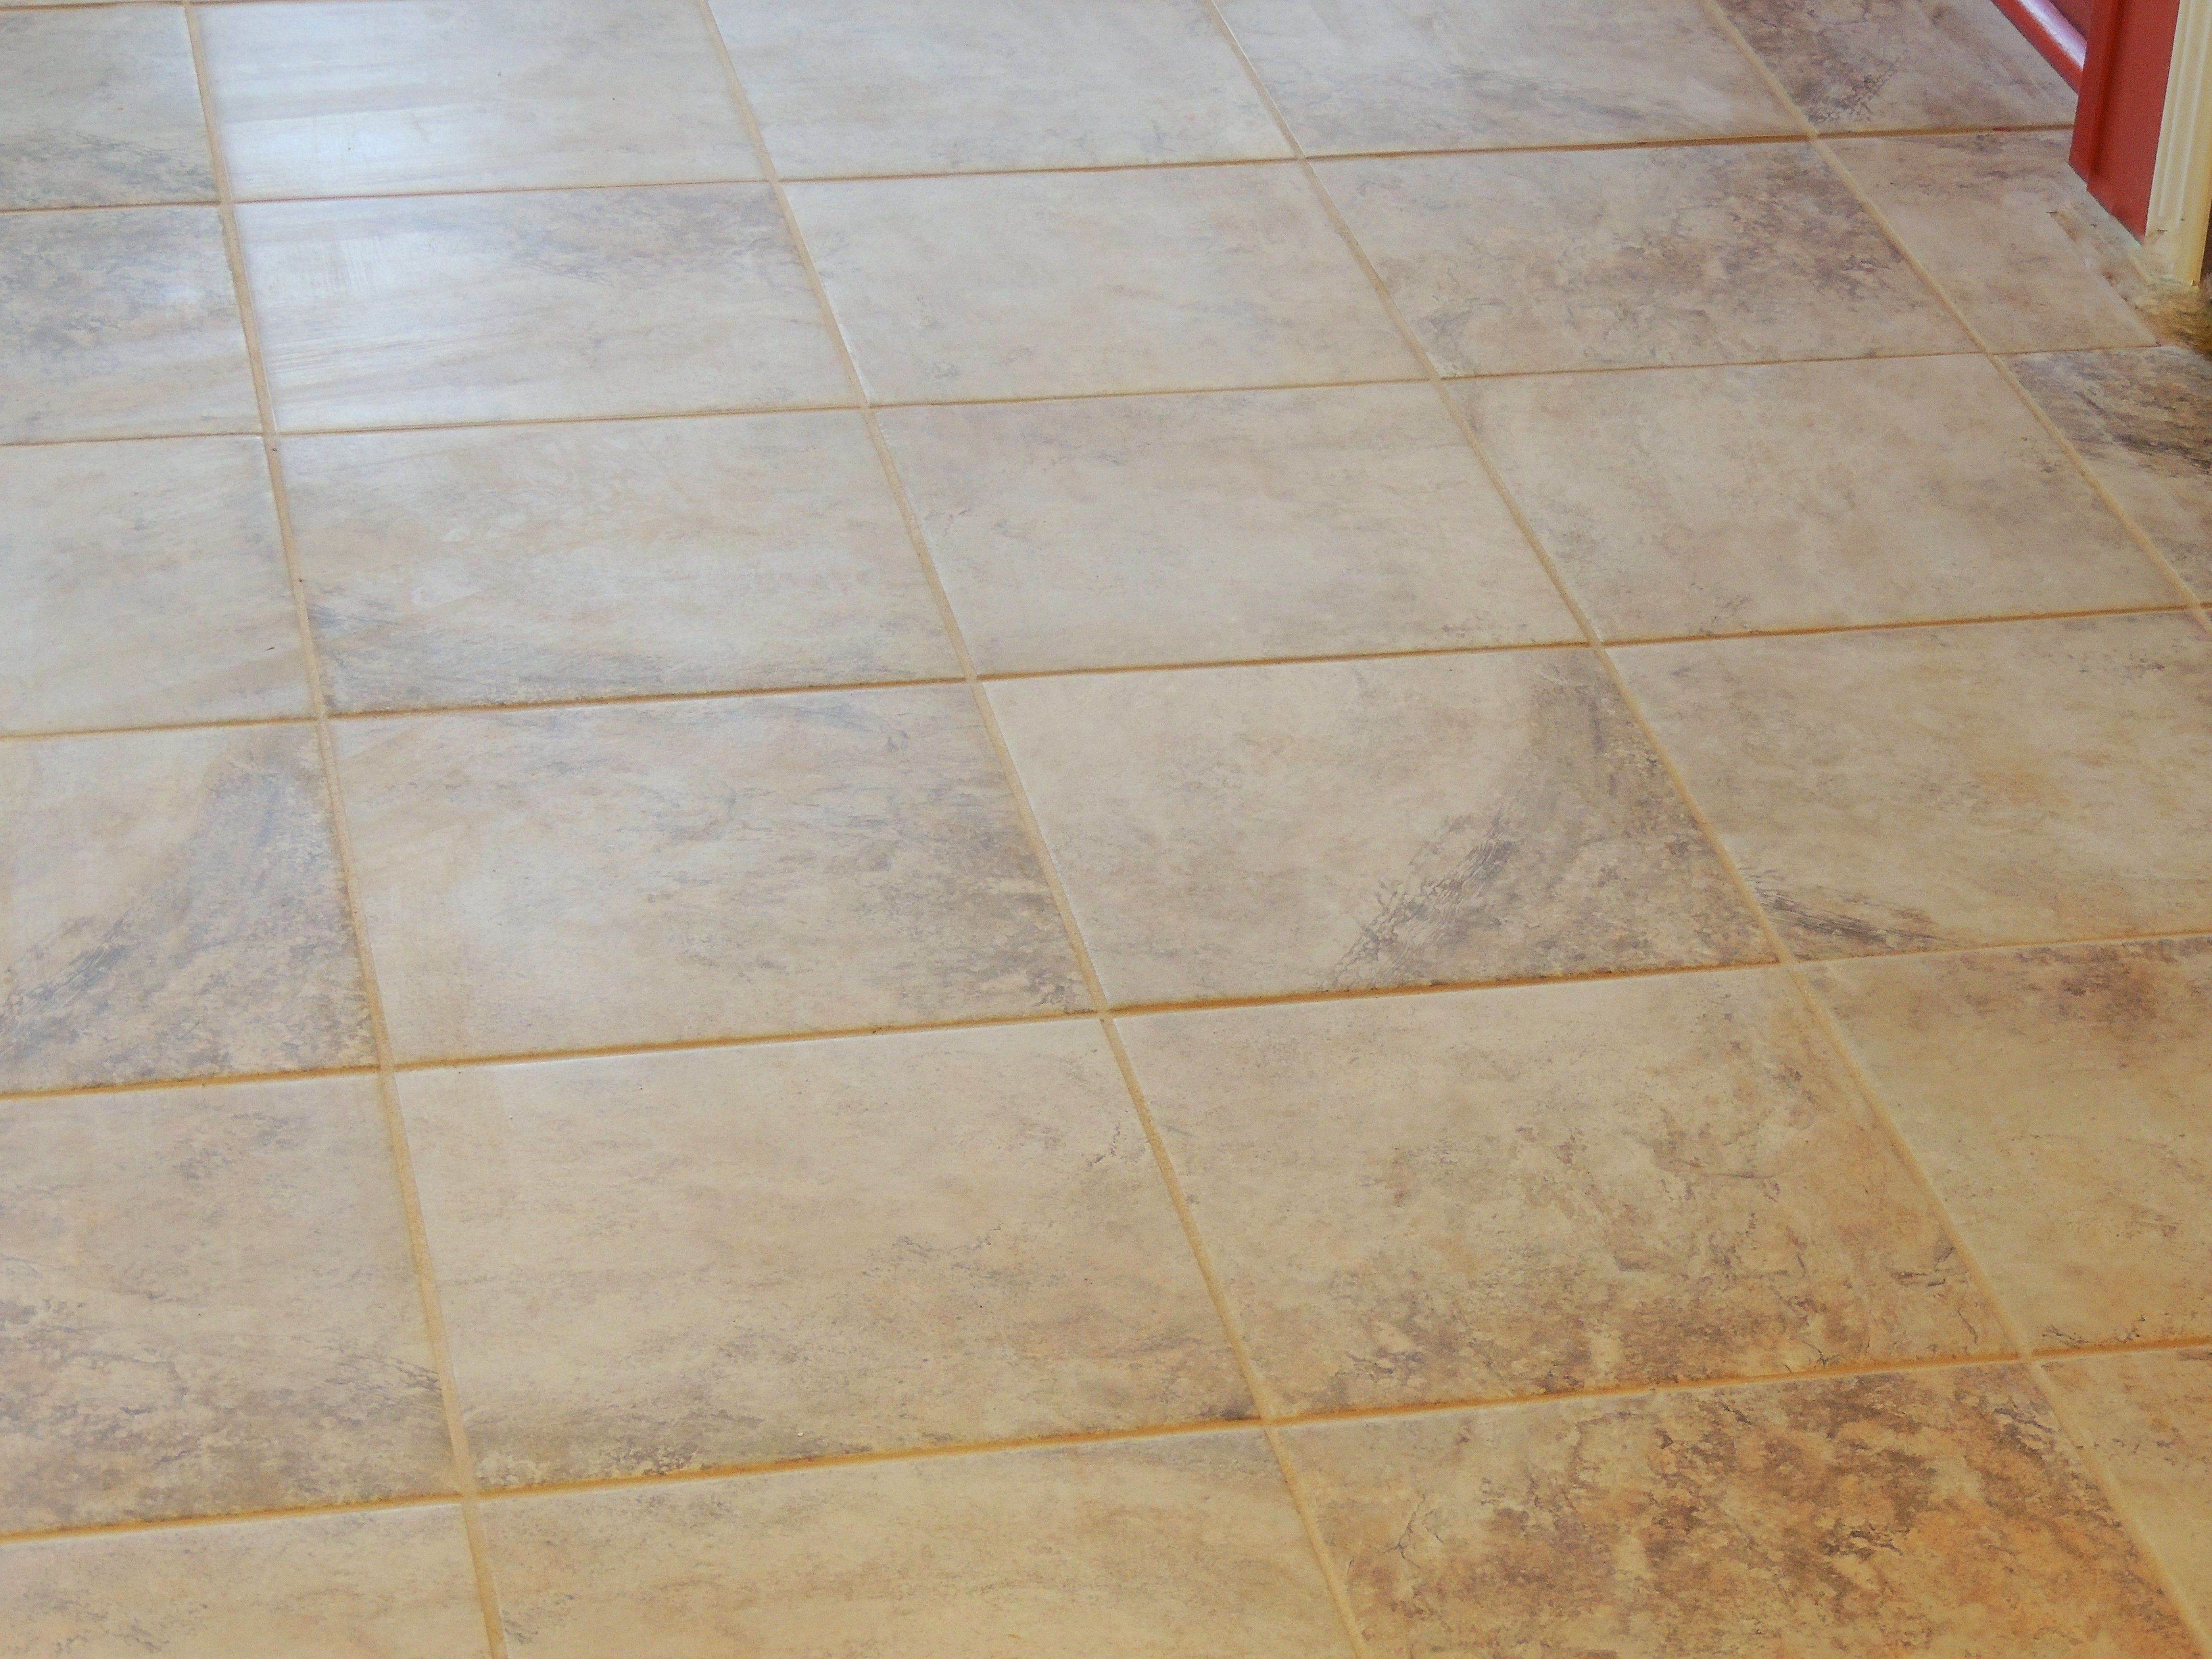 Ceramic Tile Mesa Beige From Lowes 12 With Mocha Grout